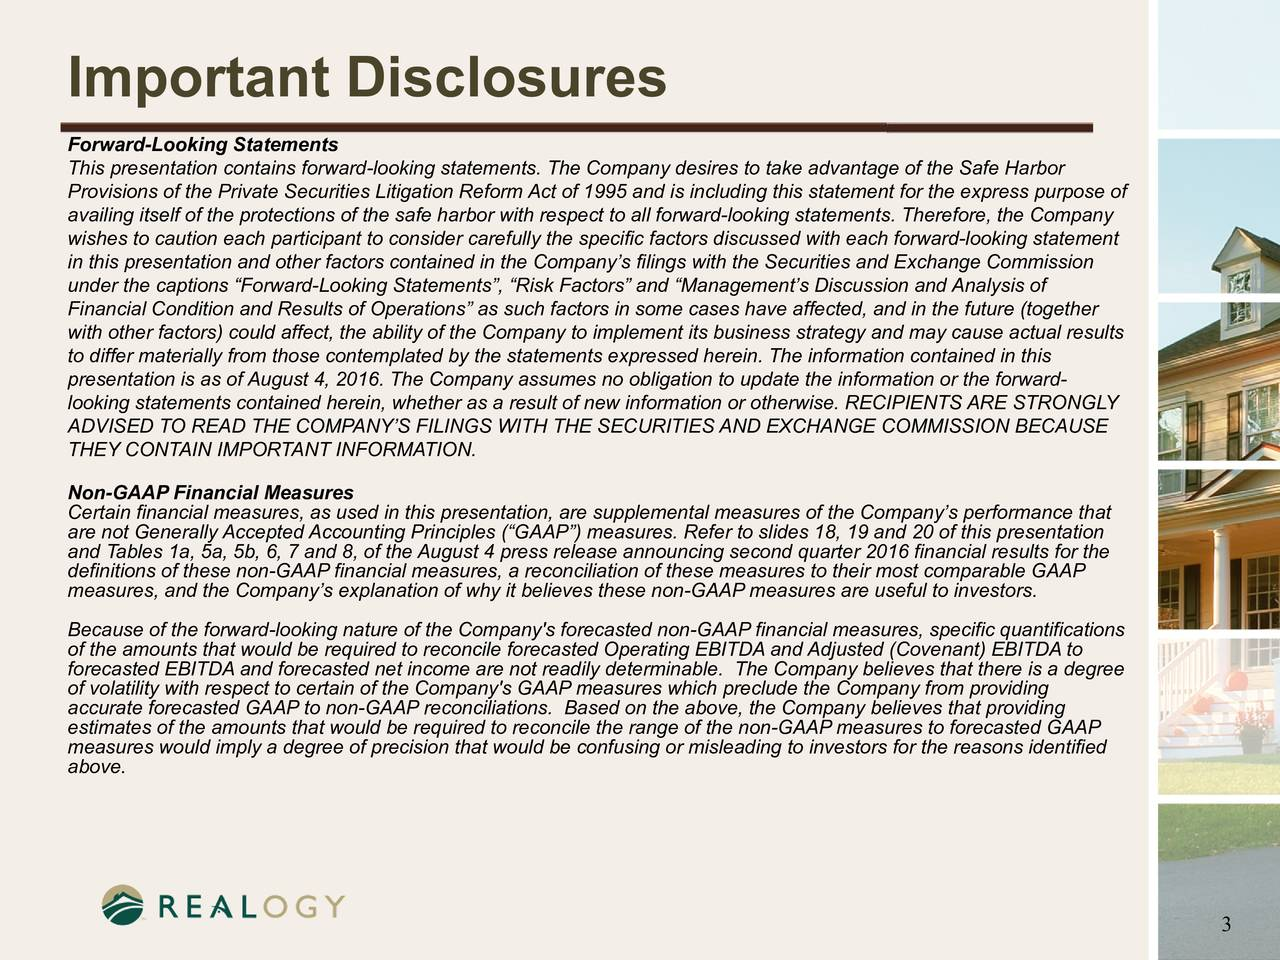 Forward-Looking Statements This presentation contains forward-looking statements. The Company desires to take advantage of the Safe Harbor Provisions of the Private Securities Litigation Reform Act of 1995 and is including this statement for the express purpose of availing itself of the protections of the safe harbor with respect to all forward-looking statements. Therefore, the Company wishes to caution each participant to consider carefully the specific factors discussed with each forward-looking statement in this presentation and other factors contained in the Companys filings with the Securities and Exchange Commission under the captions Forward-Looking Statements, Risk Factors and Managements Discussion and Analysis of Financial Condition and Results of Operations as such factors in some cases have affected, and in the future (together with other factors) could affect, the ability of the Company to implement its business strategy and may cause actual results to differ materially from those contemplated by the statements expressed herein. The information contained in this presentation is as of August4, 2016. The Company assumes no obligation to update the information or the forward- looking statements contained herein, whether as a result of new information or otherwise. RECIPIENTS ARE STRONGLY ADVISED TO READ THE COMPANYS FILINGS WITH THE SECURITIES AND EXCHANGE COMMISSION BECAUSE THEY CONTAIN IMPORTANT INFORMATION. Non-GAAP Financial Measures Certain financial measures, as used in this presentation, are supplemental measures of the Companys performance that are not Generally Accepted Accounting Principles (GAAP) measures. Refer to slides 18, 19 and 20 of this presentation and Tables 1a, 5a, 5b, 6, 7 and 8, of the August4 press release announcing second quarter 2016 financial results for the definitions of these non-GAAP financial measures, a reconciliation of these measures to their most comparable GAAP measures, and the Companys explanation of why it believes these non-GAAP measures are useful to investors. Because of the forward-looking nature of the Company's forecasted non-GAAP financial measures, specific quantifications of the amounts that would be required to reconcile forecasted Operating EBITDA and Adjusted (Covenant) EBITDA to forecasted EBITDA and forecasted net income are not readily determinable. The Company believes that there is a degree of volatility with respect to certain of the Company's GAAP measures which preclude the Company from providing accurate forecasted GAAP to non-GAAP reconciliations. Based on the above, the Company believes that providing estimates of the amounts that would be required to reconcile the range of the non-GAAP measures to forecasted GAAP measures would imply a degree of precision that would be confusing or misleading to investors for the reasons identified above. 3